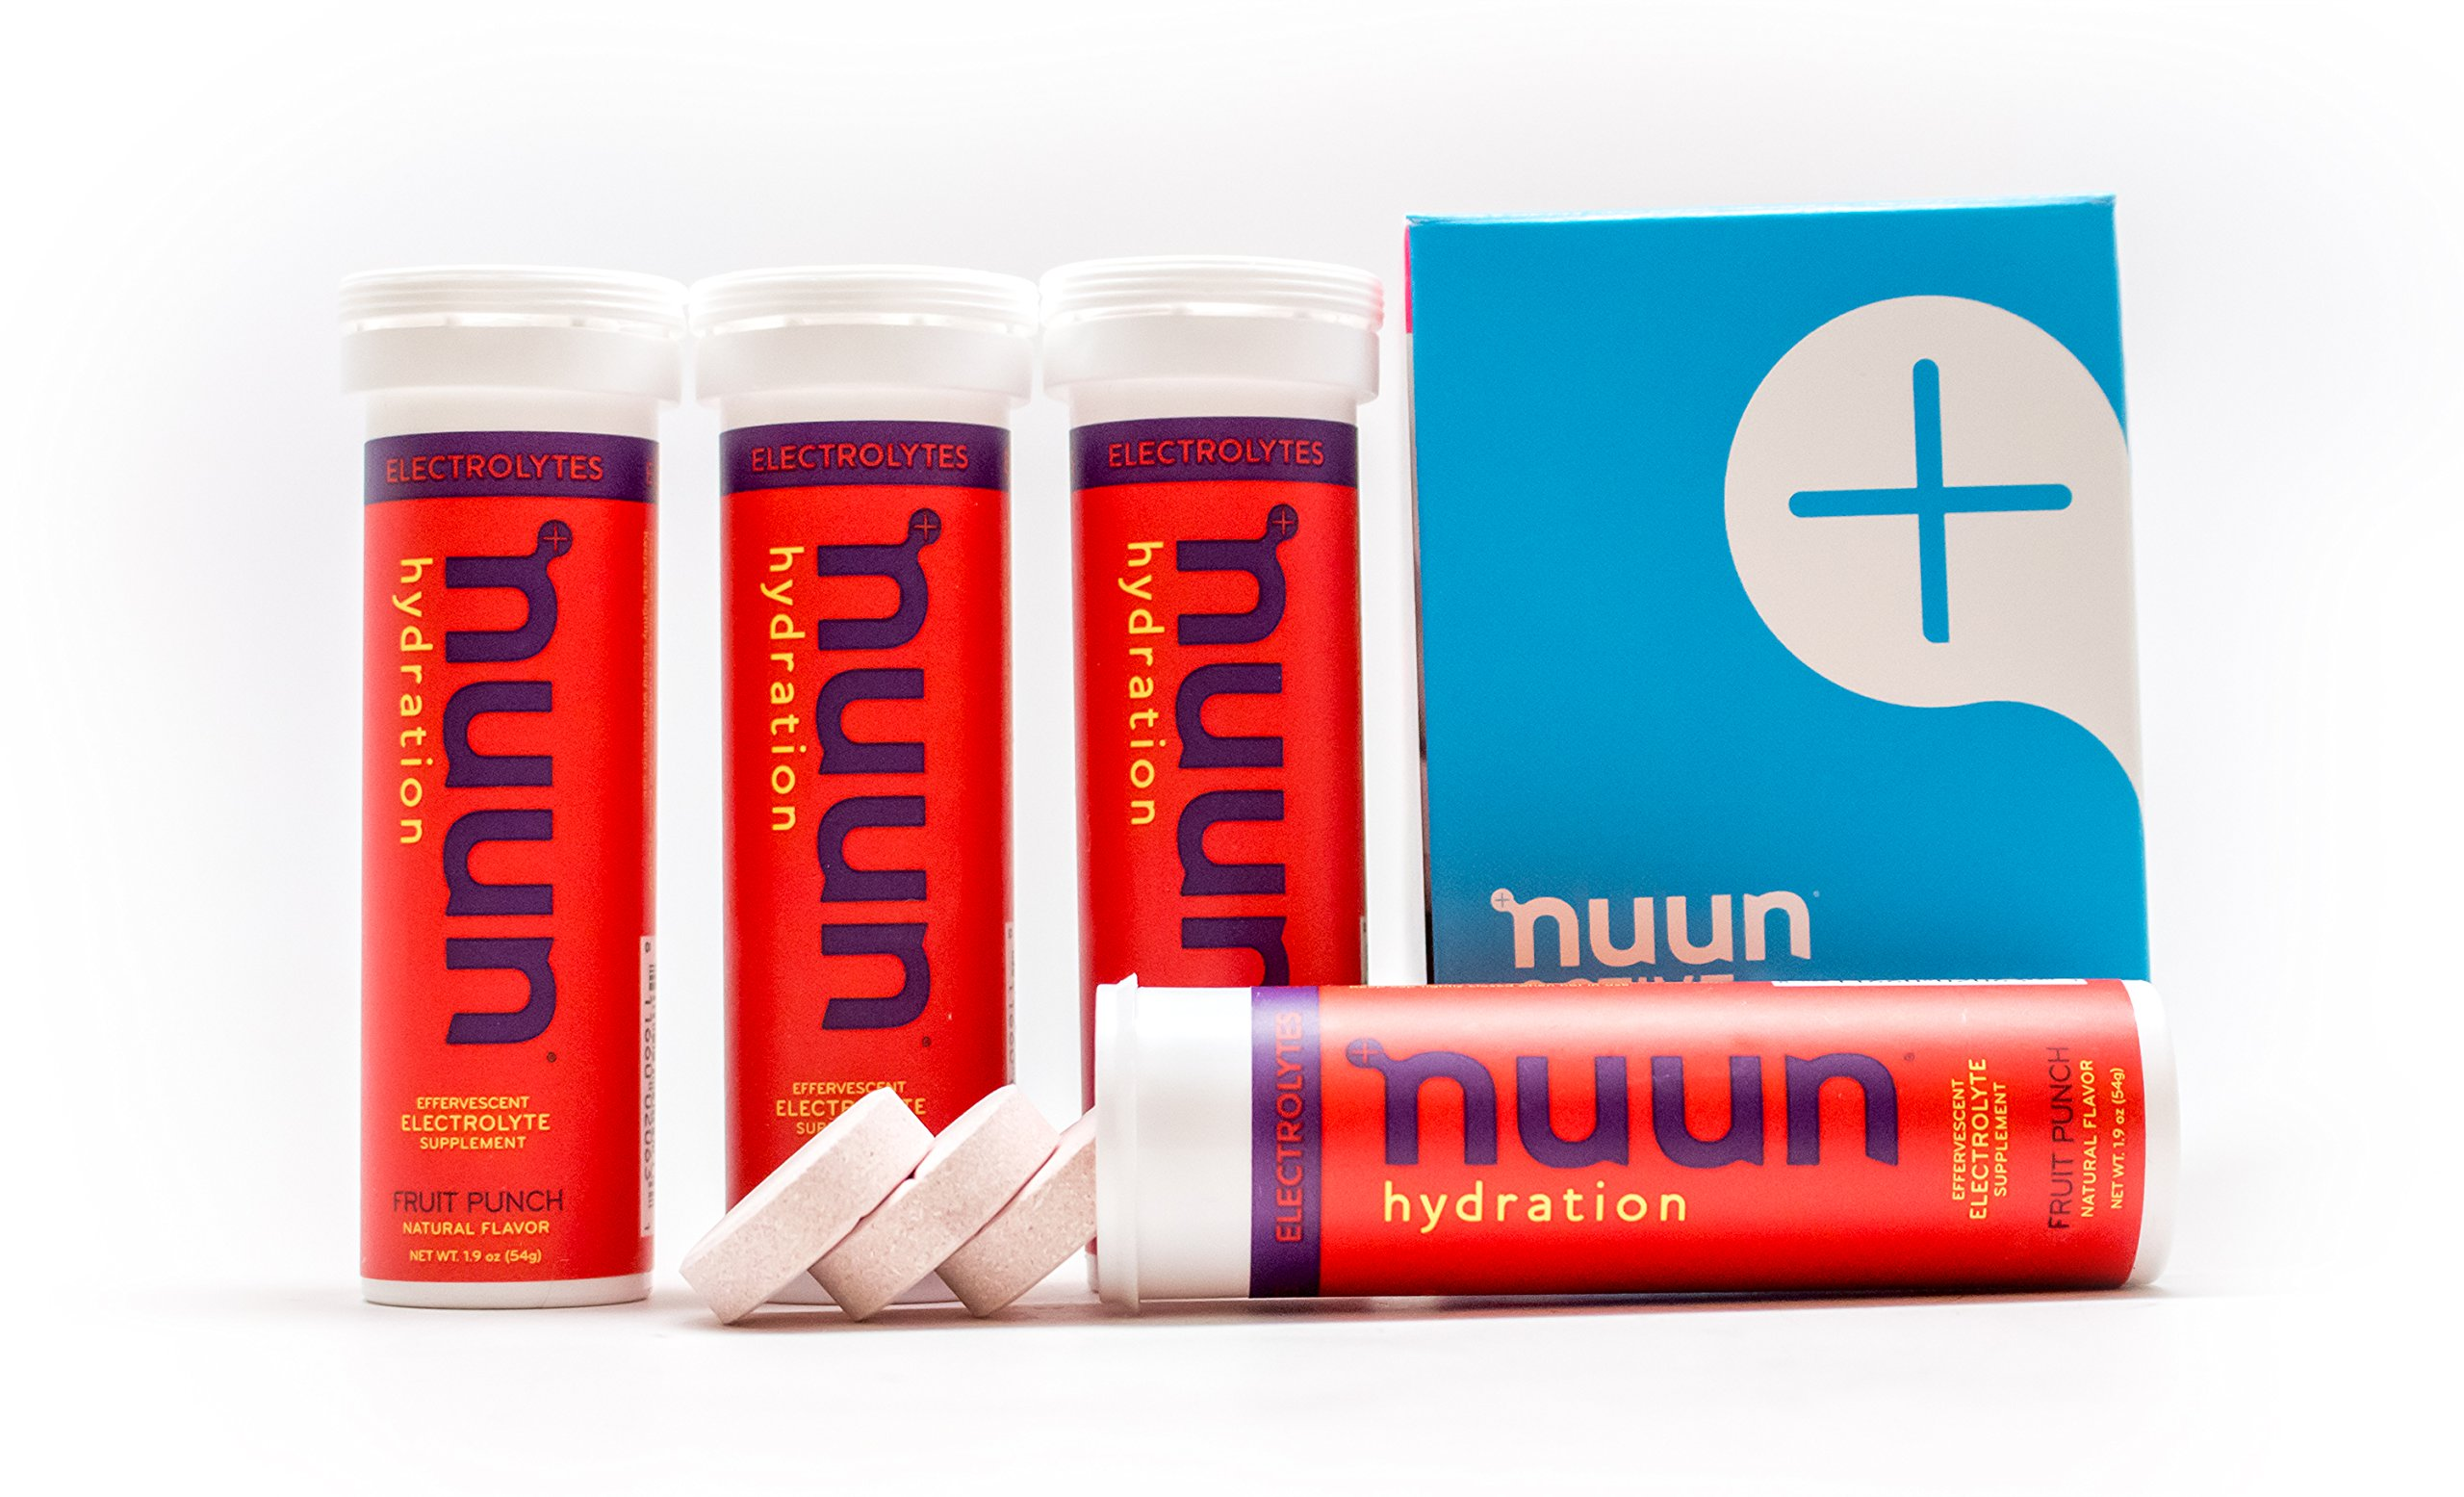 Nuun Hydration: Electrolyte Drink Tablets, Fruit Punch, Box of 4 Tubes (40 servings), to Recover Essential Electrolytes Lost Through Sweat